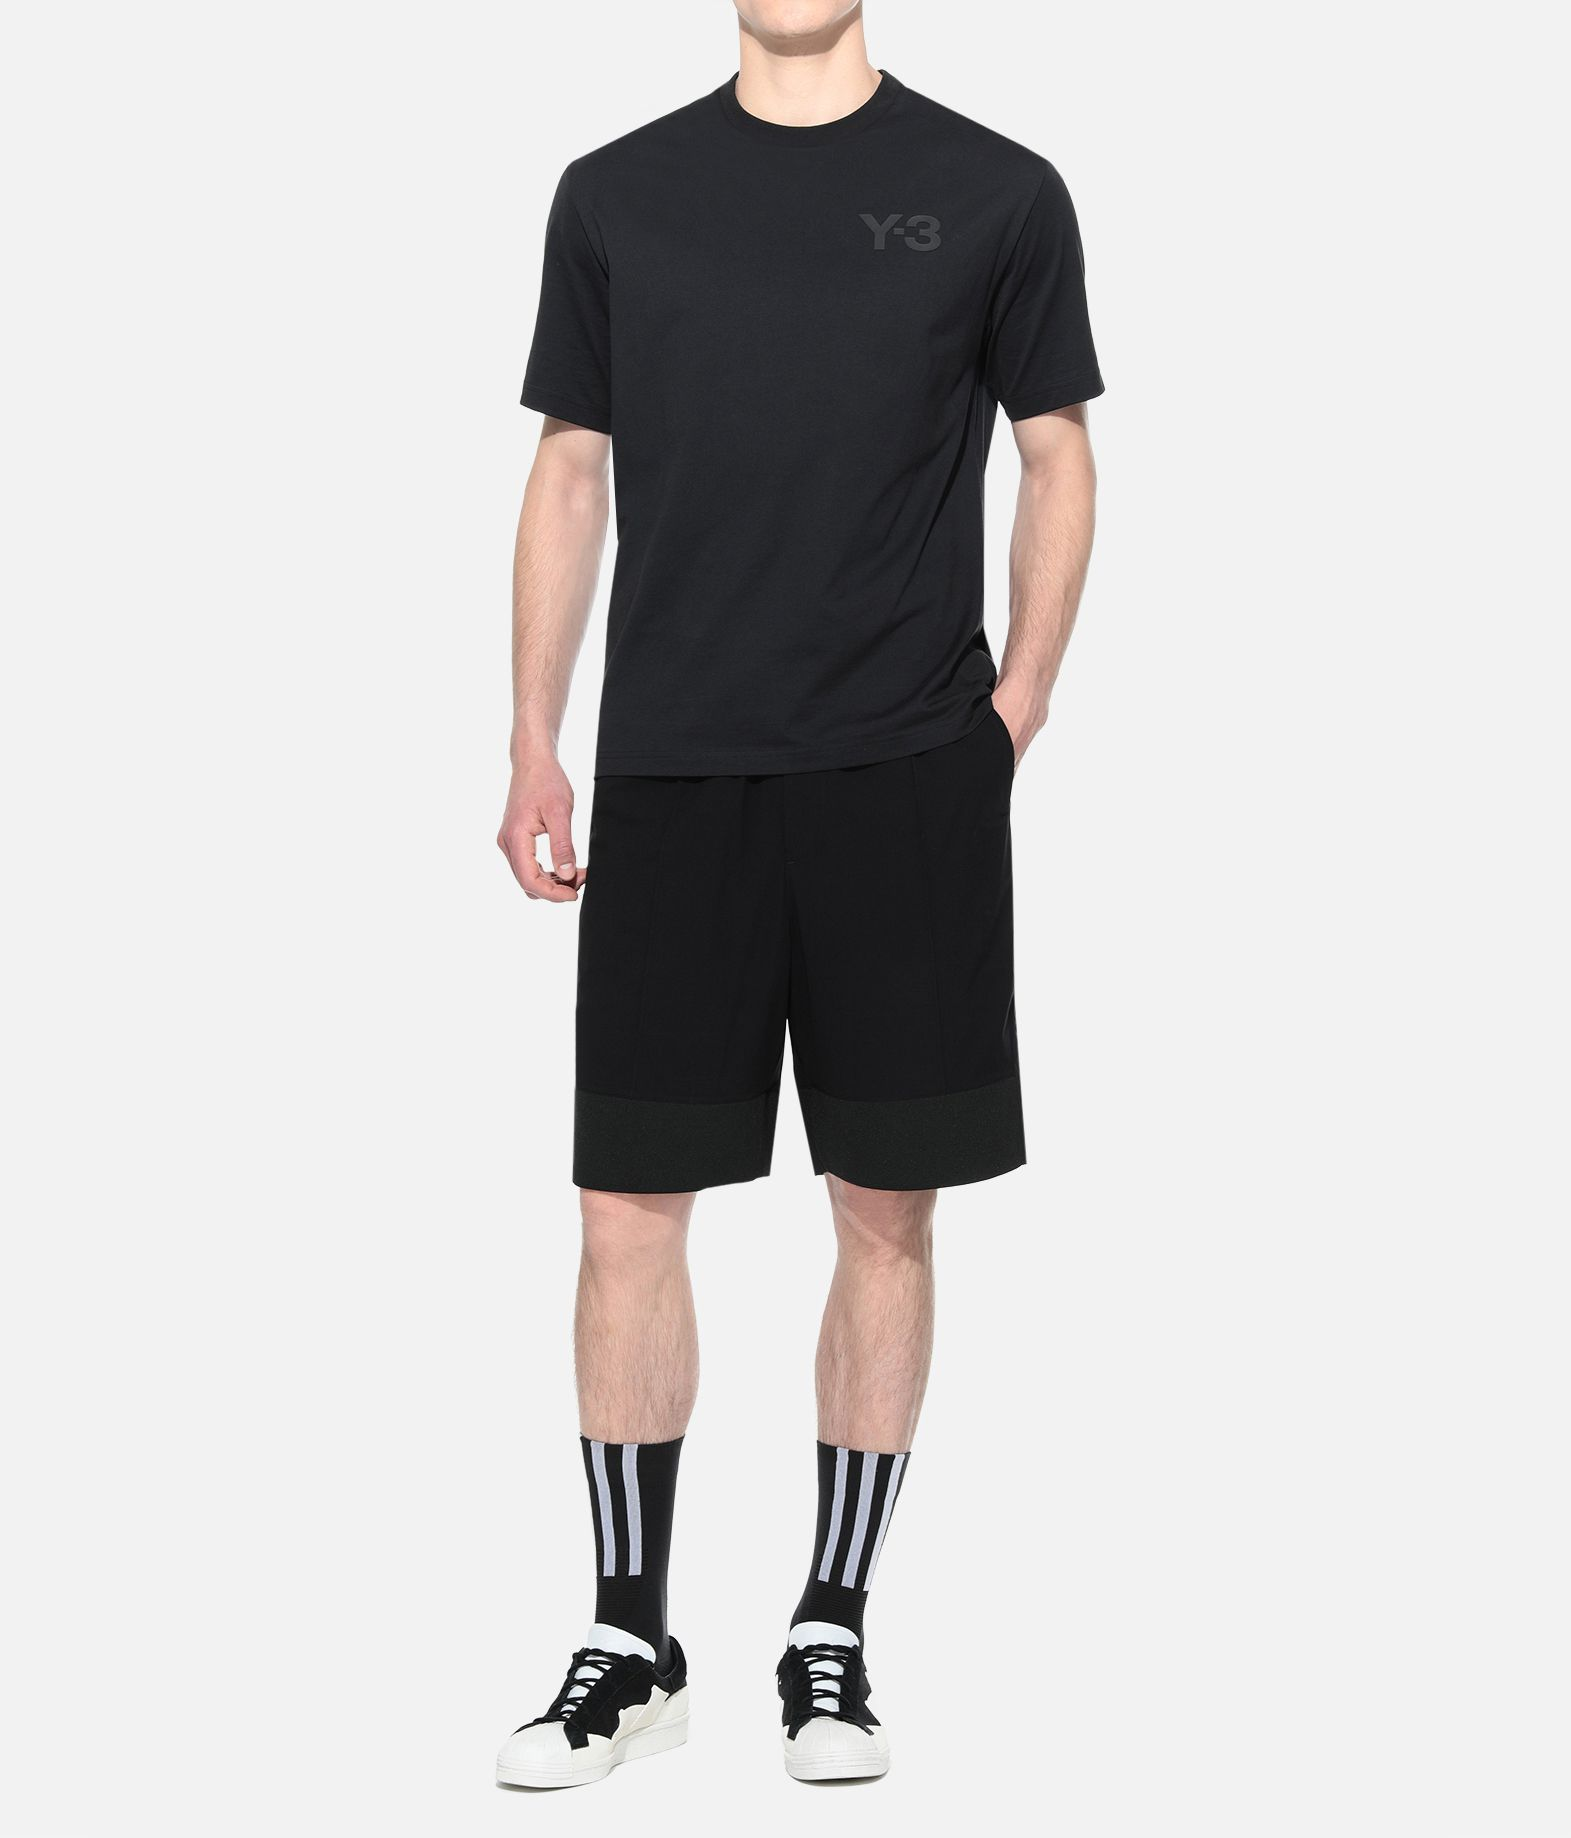 Y-3 Y-3 Logo Tee Short sleeve t-shirt Man a